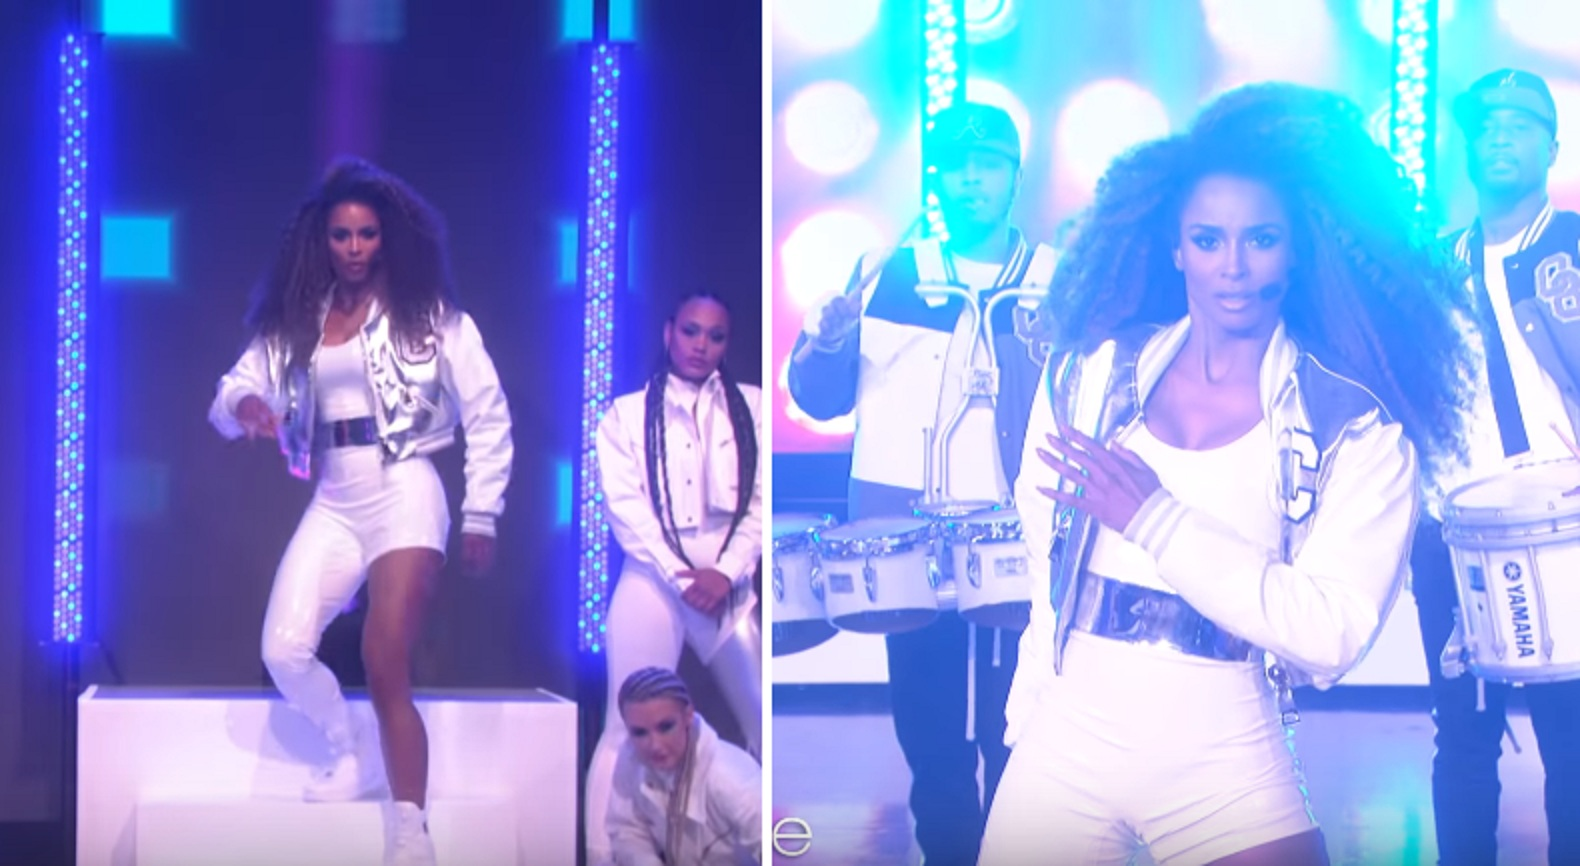 Watch: Ciara Takes Over Ellen Show with 'Level Up/Dose' Medley Performance!